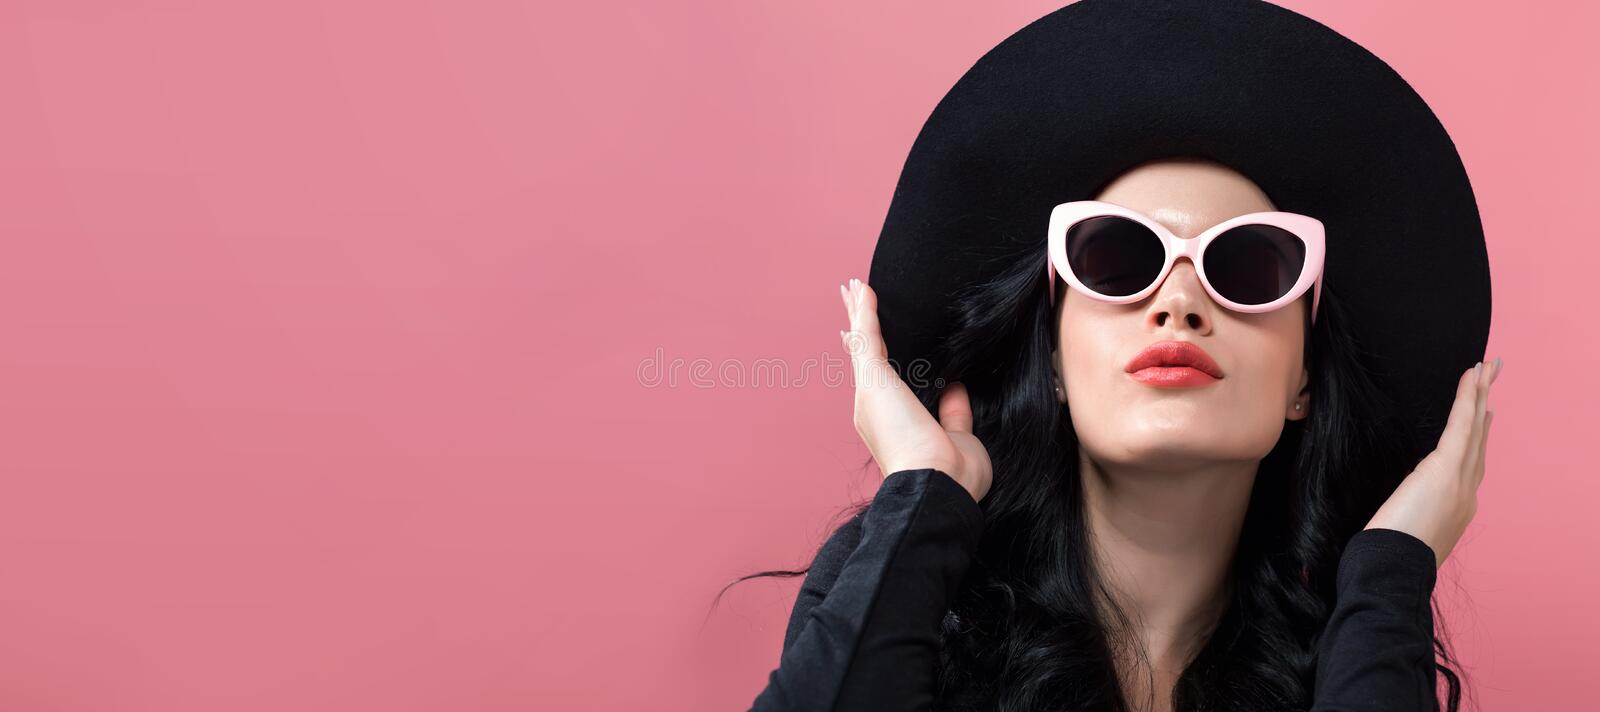 Fashionable woman in sunglasses. On a pink background stock photography